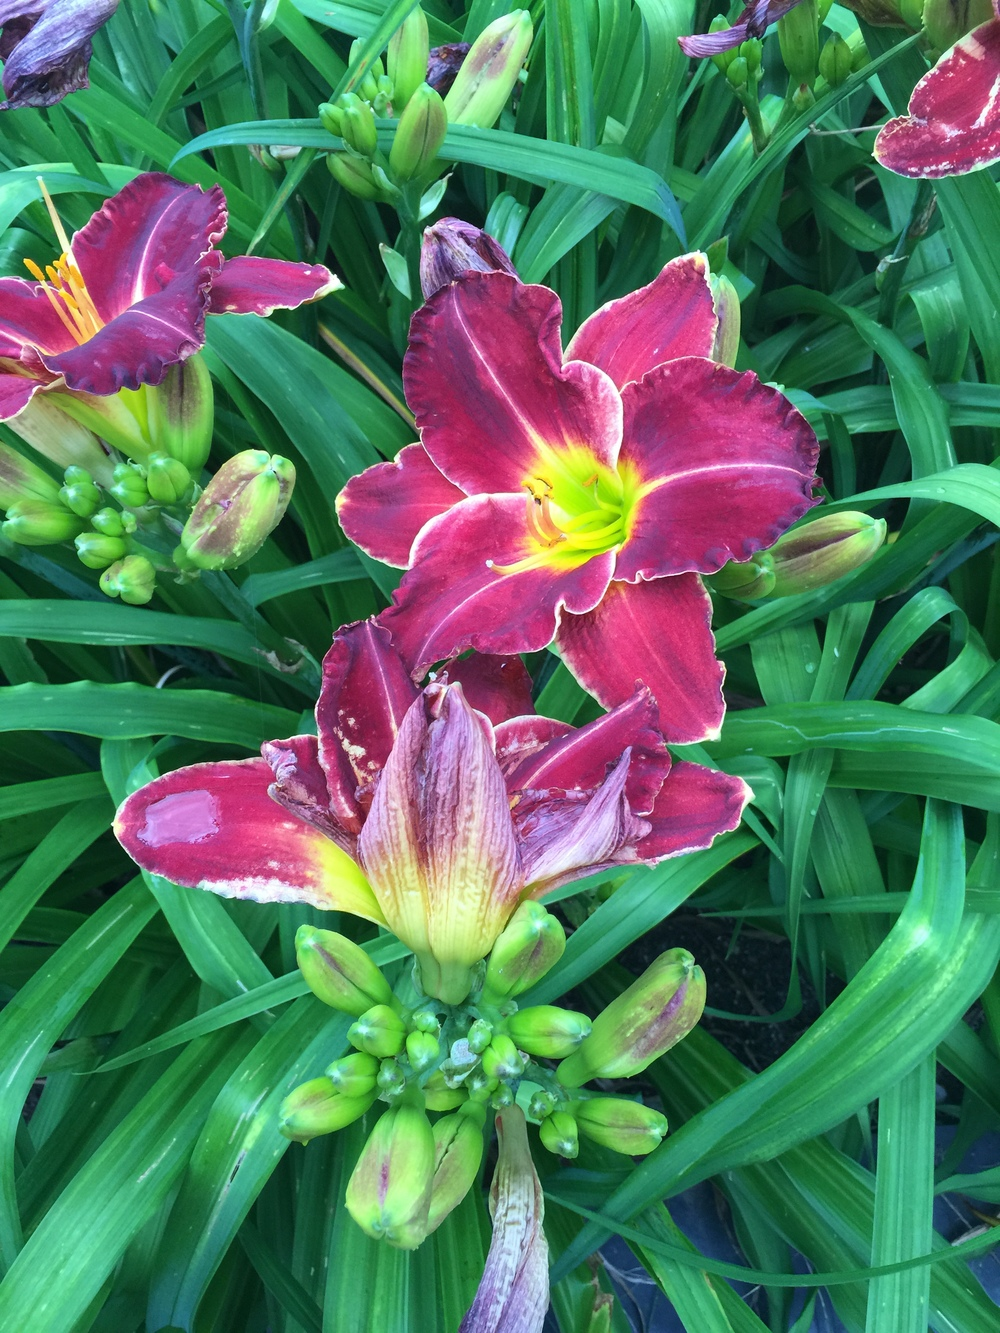 A Visit To Jims Daylilies In Upstate New York Gardeny Goodness